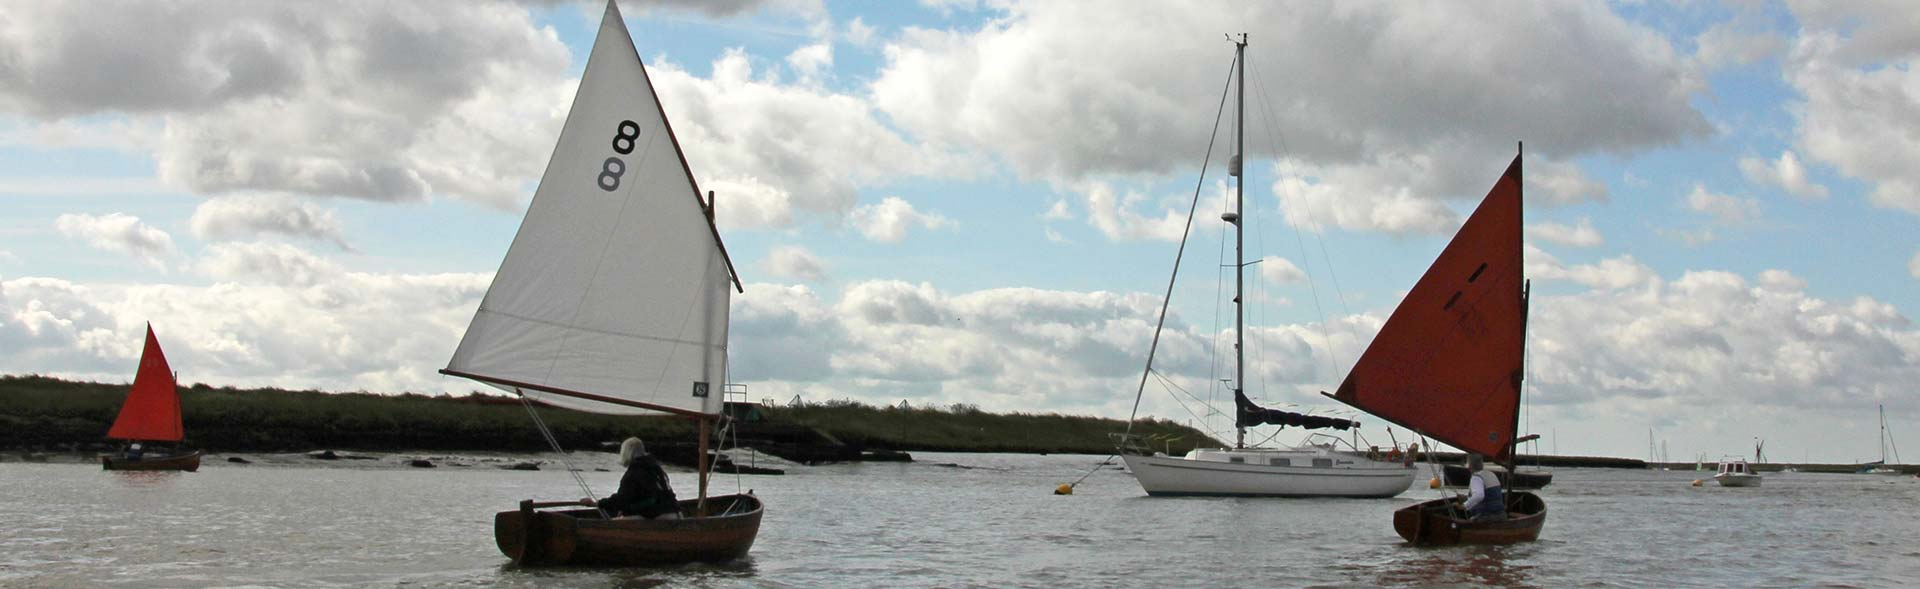 Orford Sailing Club